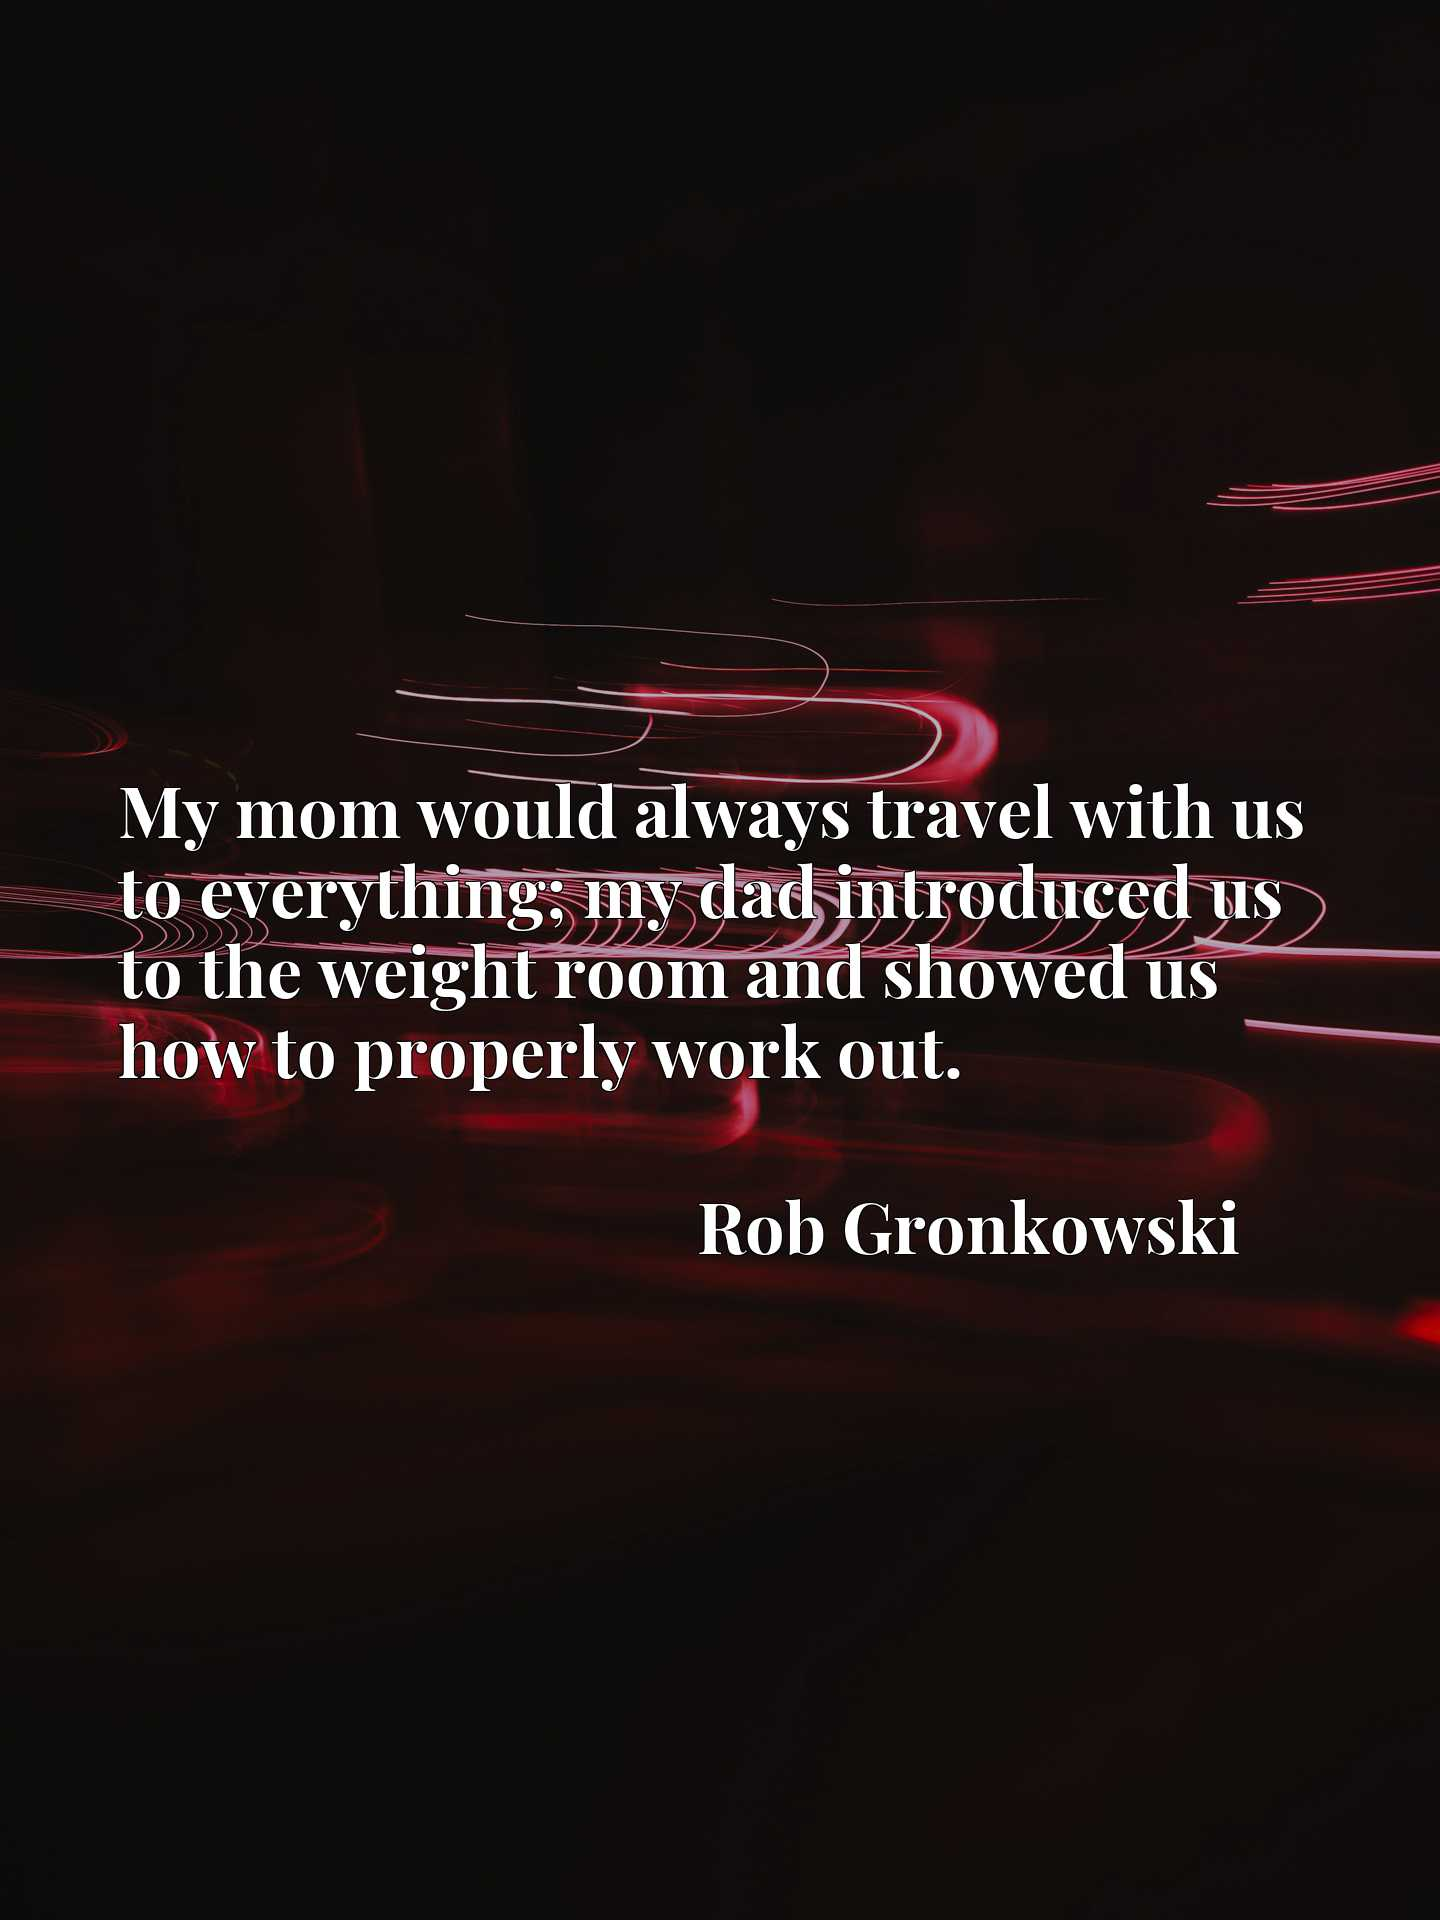 My mom would always travel with us to everything; my dad introduced us to the weight room and showed us how to properly work out.